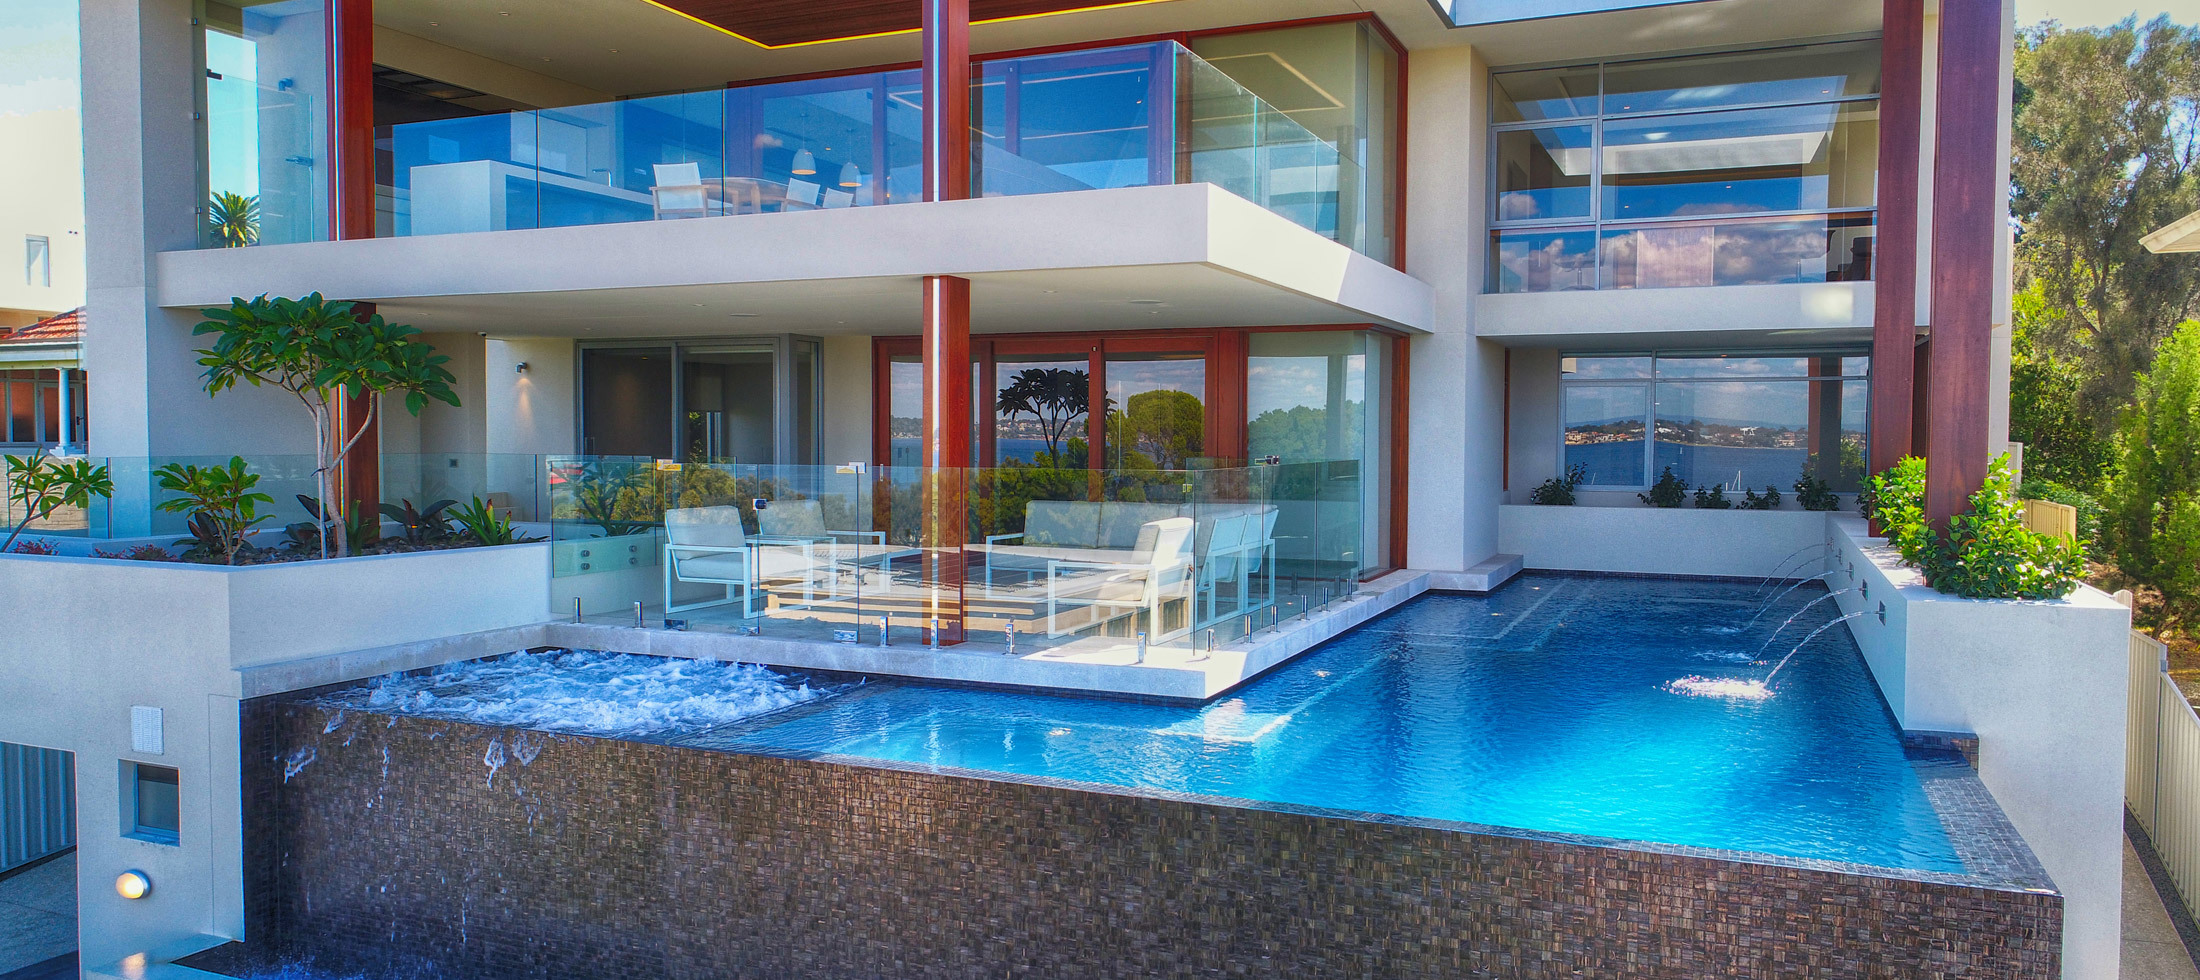 SPASA WA Pool Spa & Outdoor Living Expo - Perth on Outdoor Living Pool And Spa id=38393